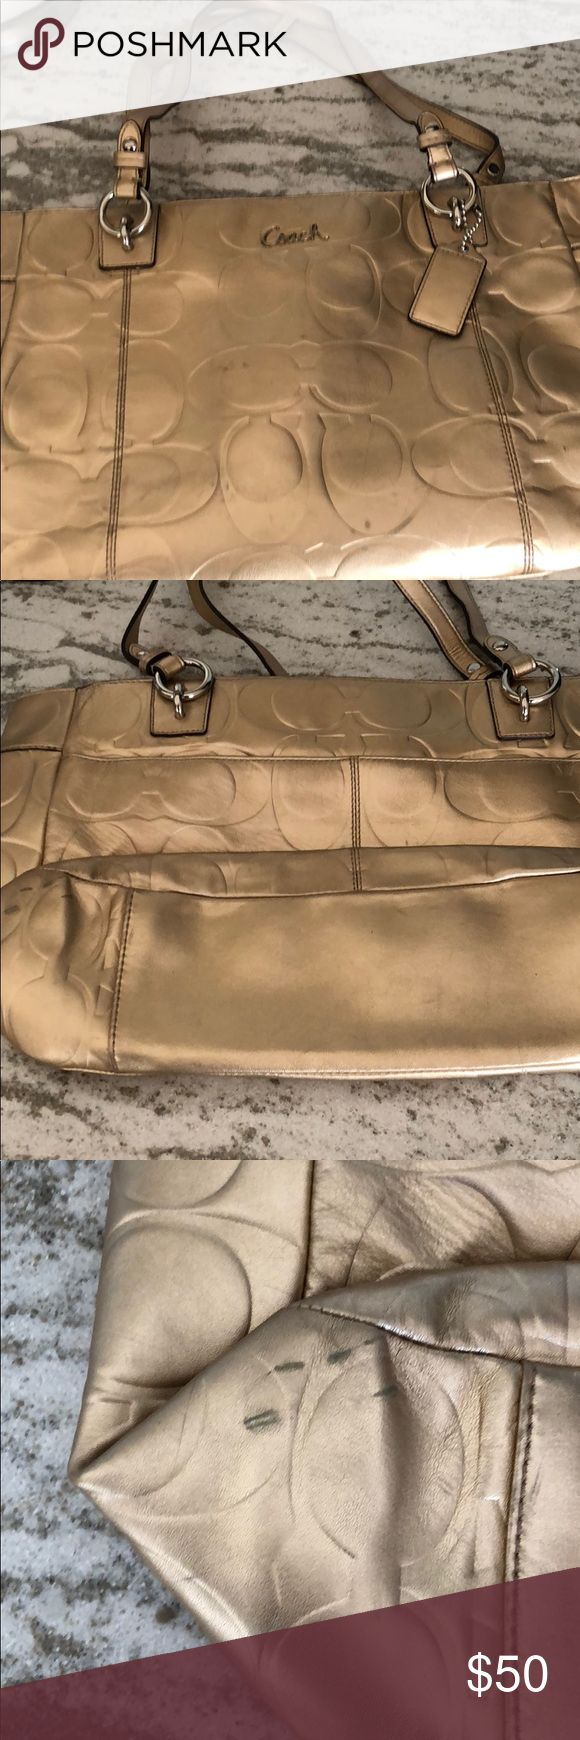 Metallic Coach tote bag Unique metallic color-like a rise/peachy gold.  Silver hardware.  Embossed leather with minimal signs of wear-some little stains.  I'm thinking with a little leather cleaner, this will be like new.  Interior has a zip and 2 open pockets and is in excellent condition.  Tote does zip close. Coach Bags Totes